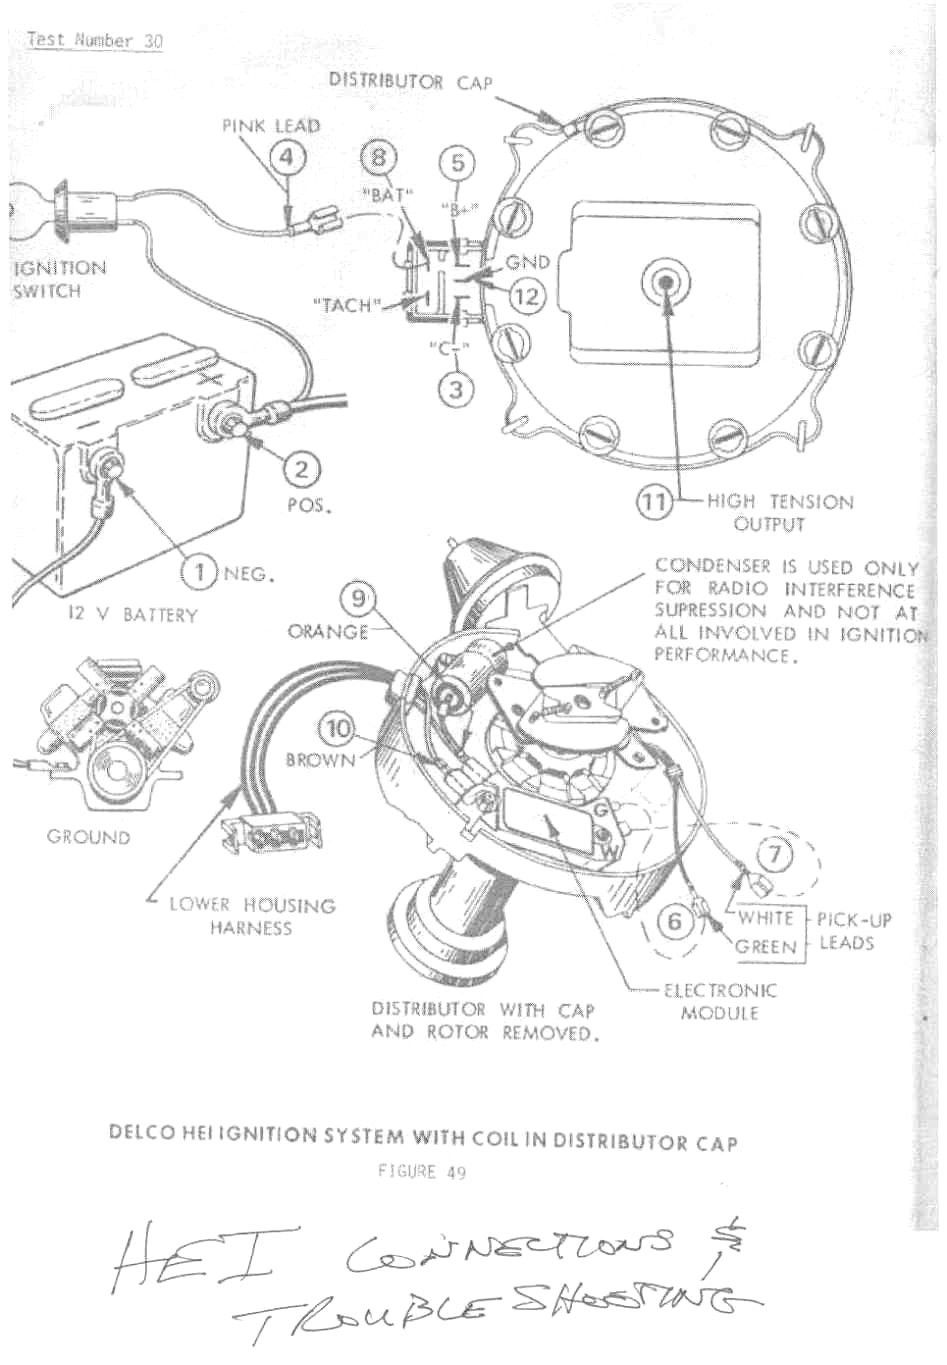 accel distributor coil wiring diagram chevy trusted wiring diagrams | rat  rod, chevy, trailer wiring diagram  pinterest